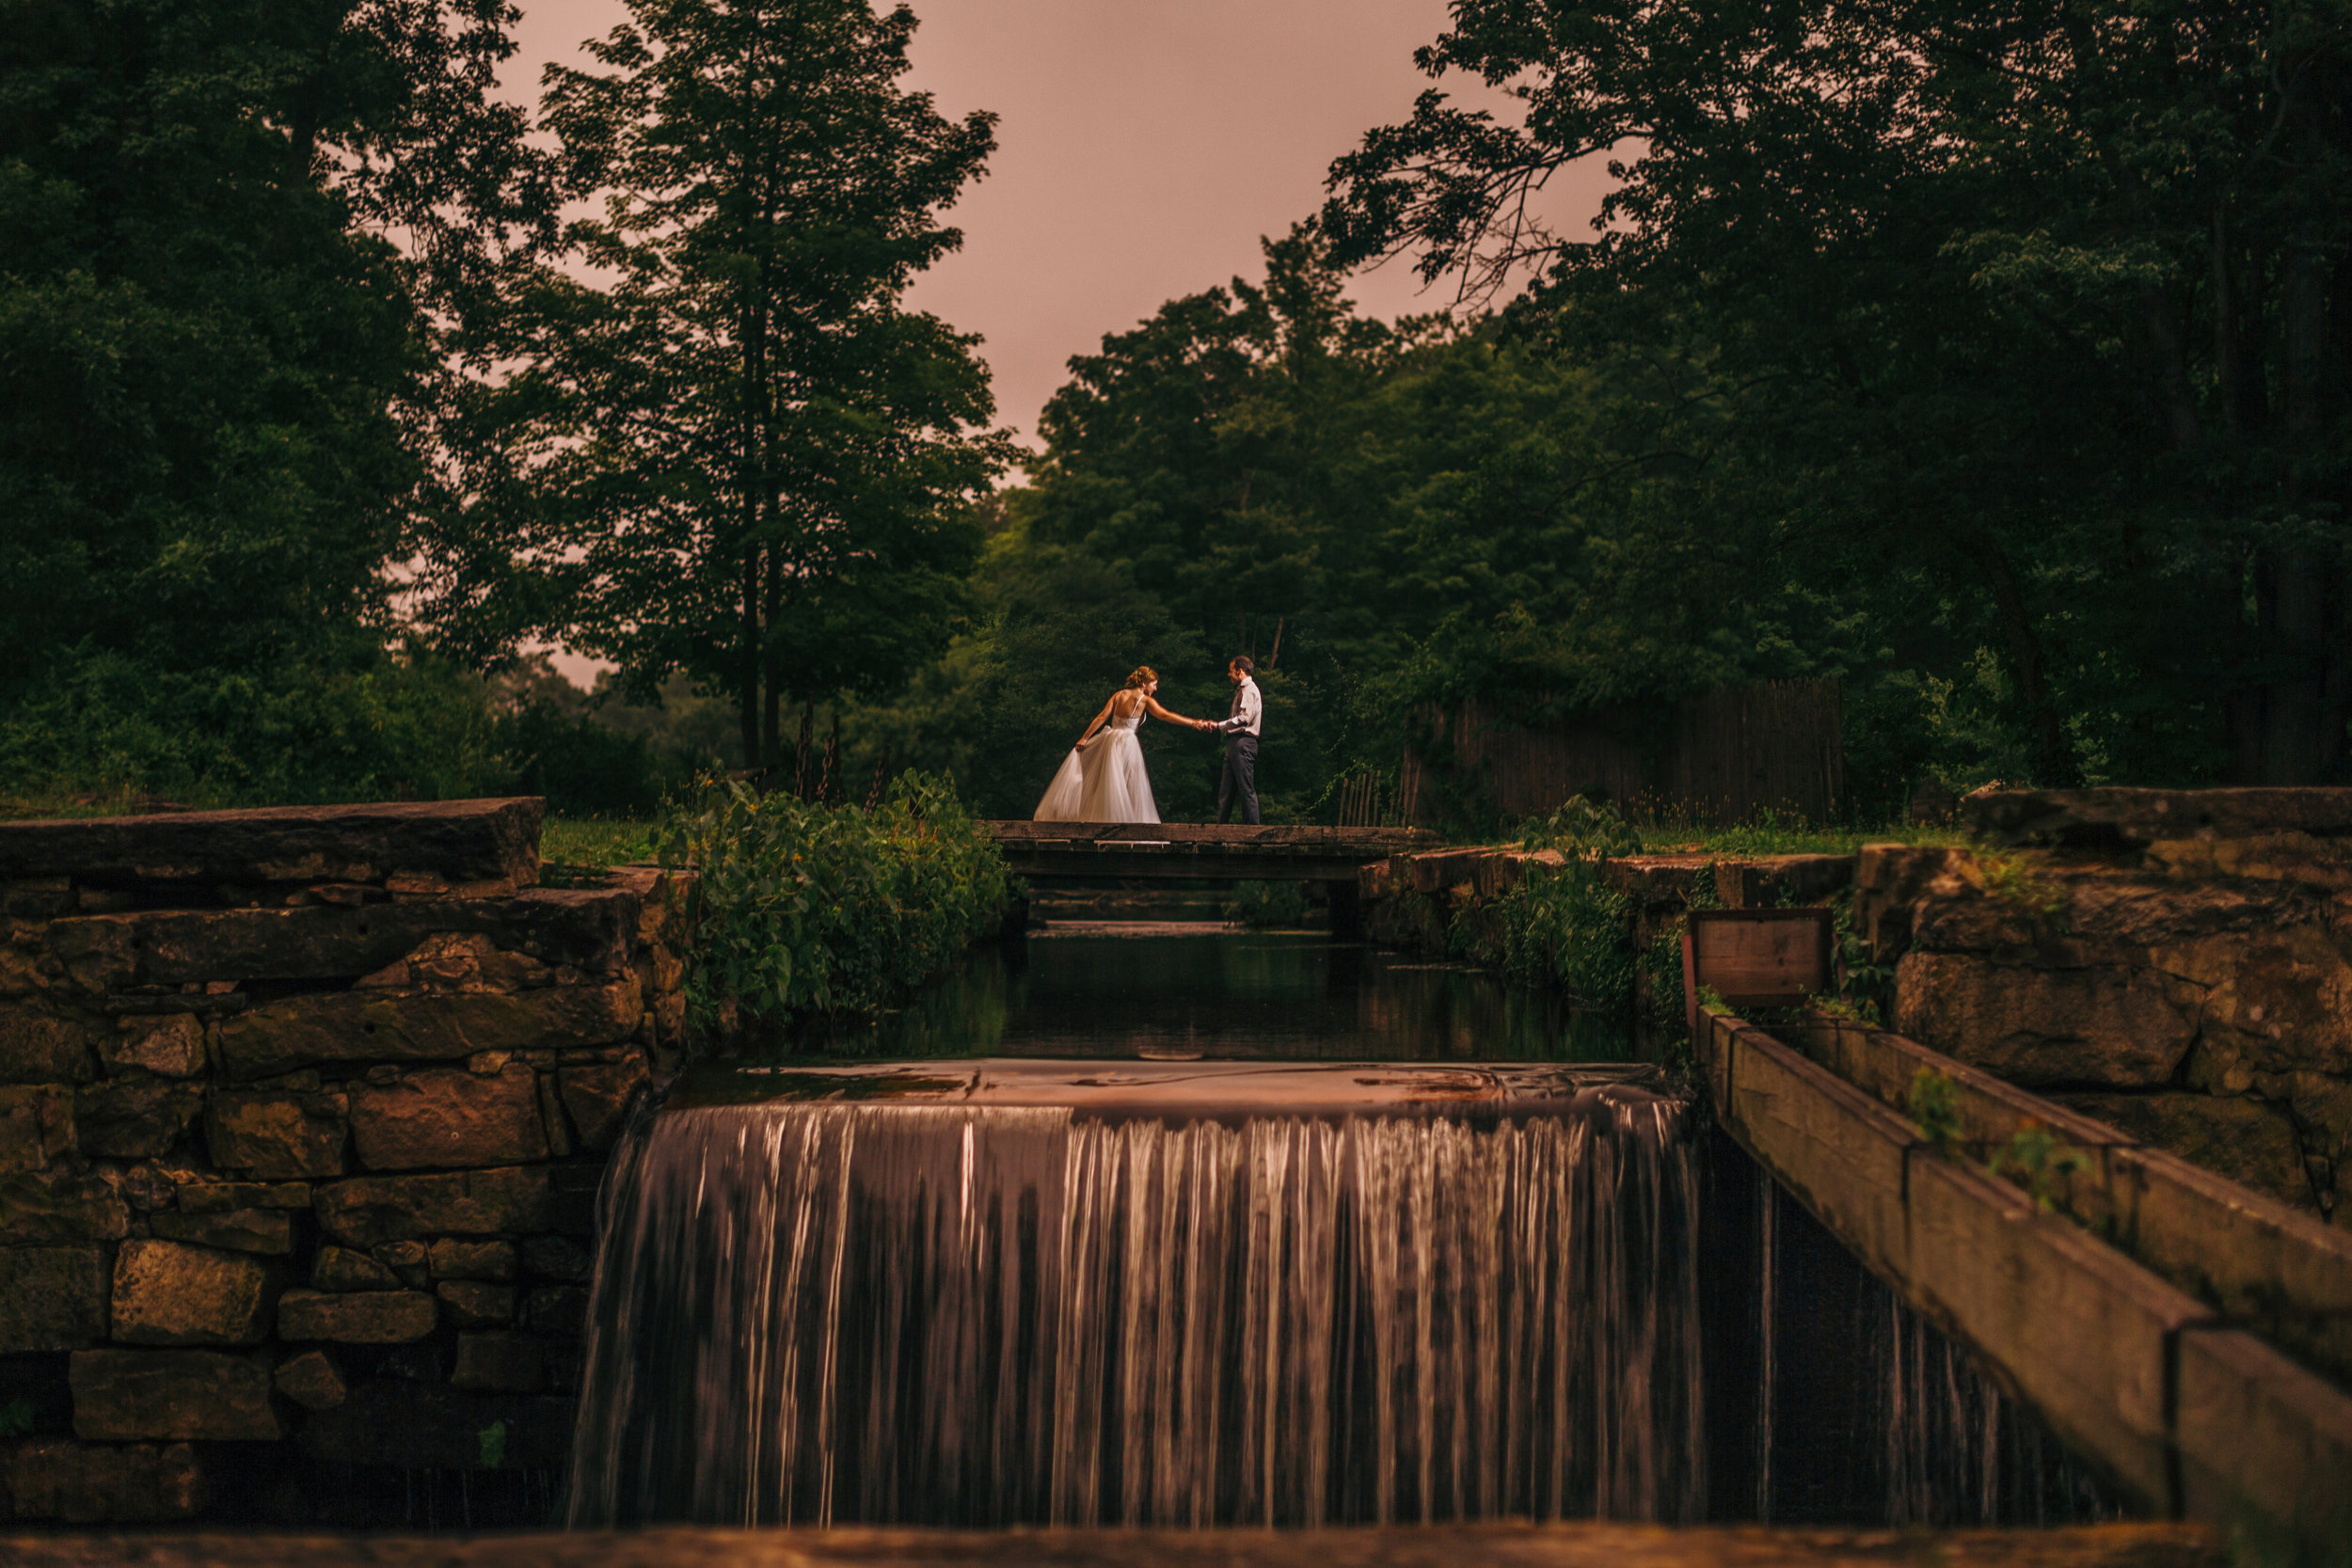 Golden hour photos with bride and groom at waterloo village in Stanhope, NJ